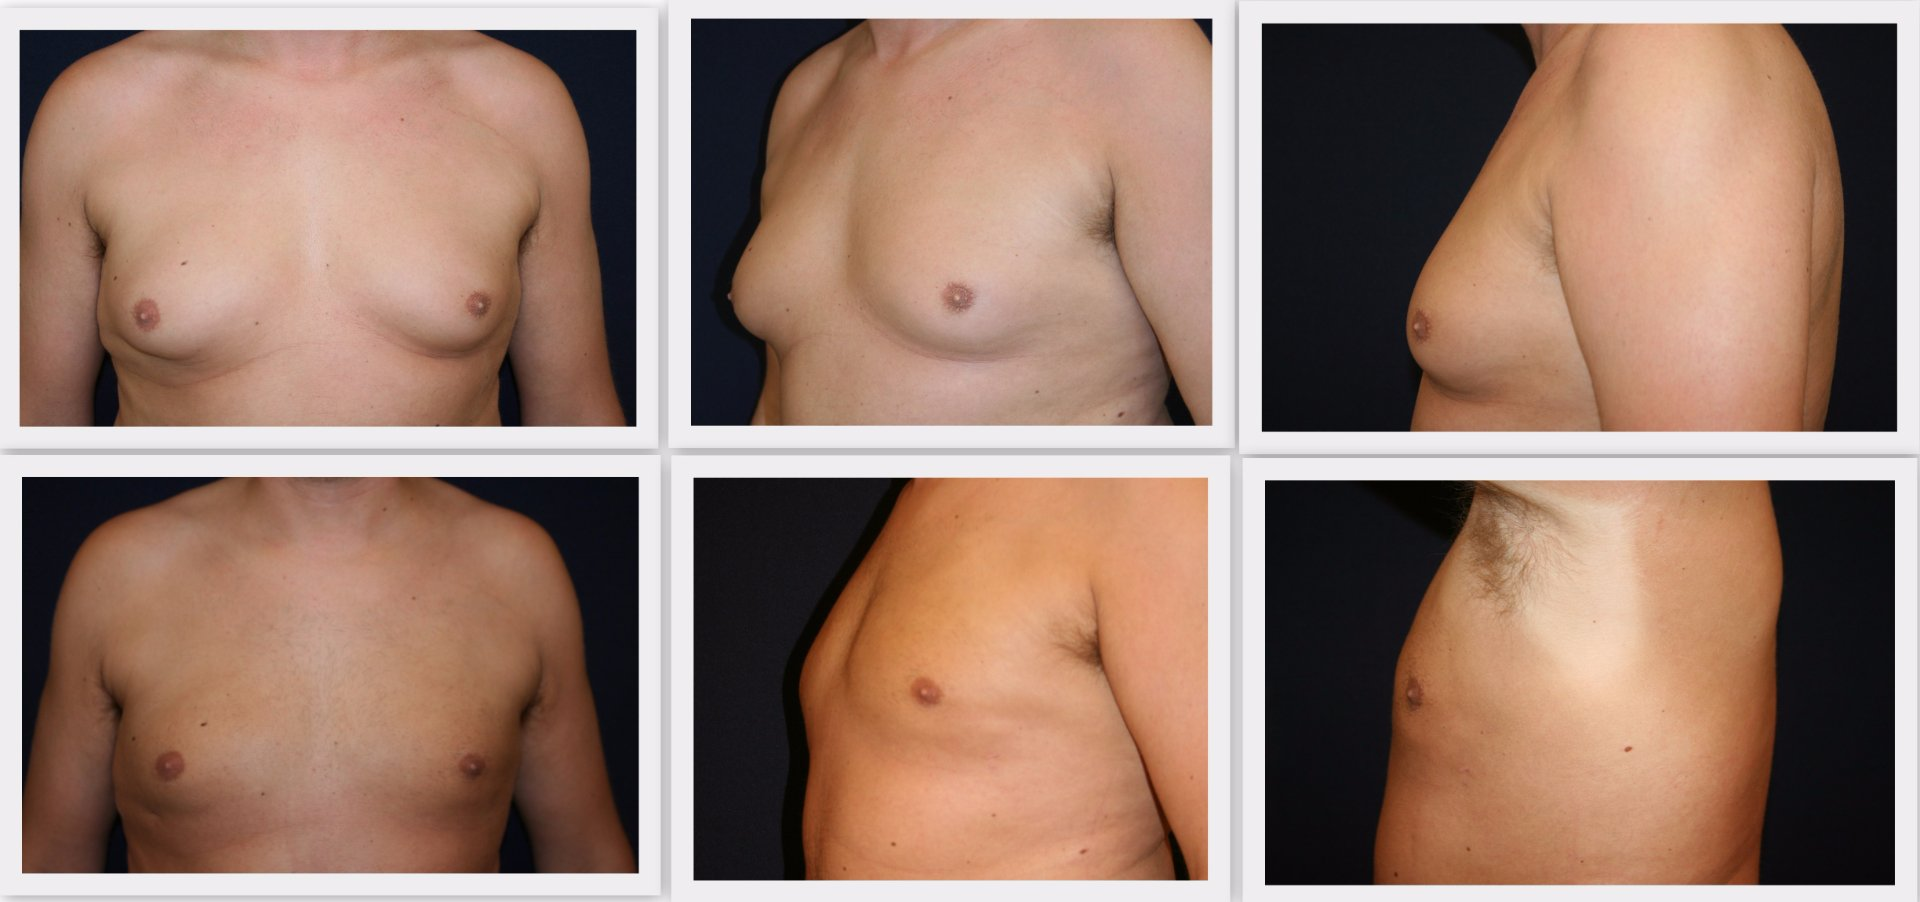 GYNAECOMASTIA (male breast reduction) Dr. Nelissen - Global Care Clinic